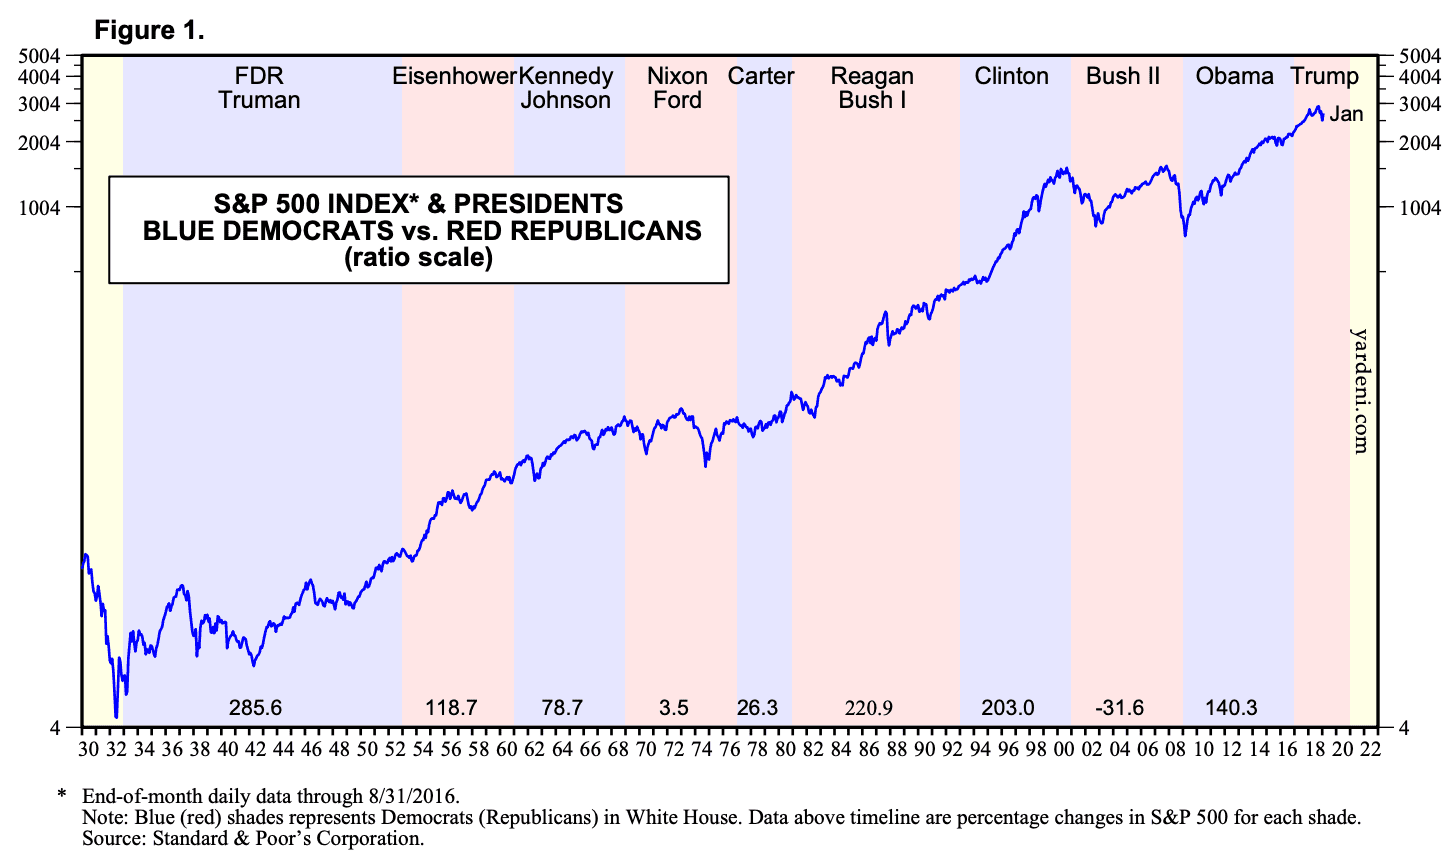 Presidents and their impact on the stock market